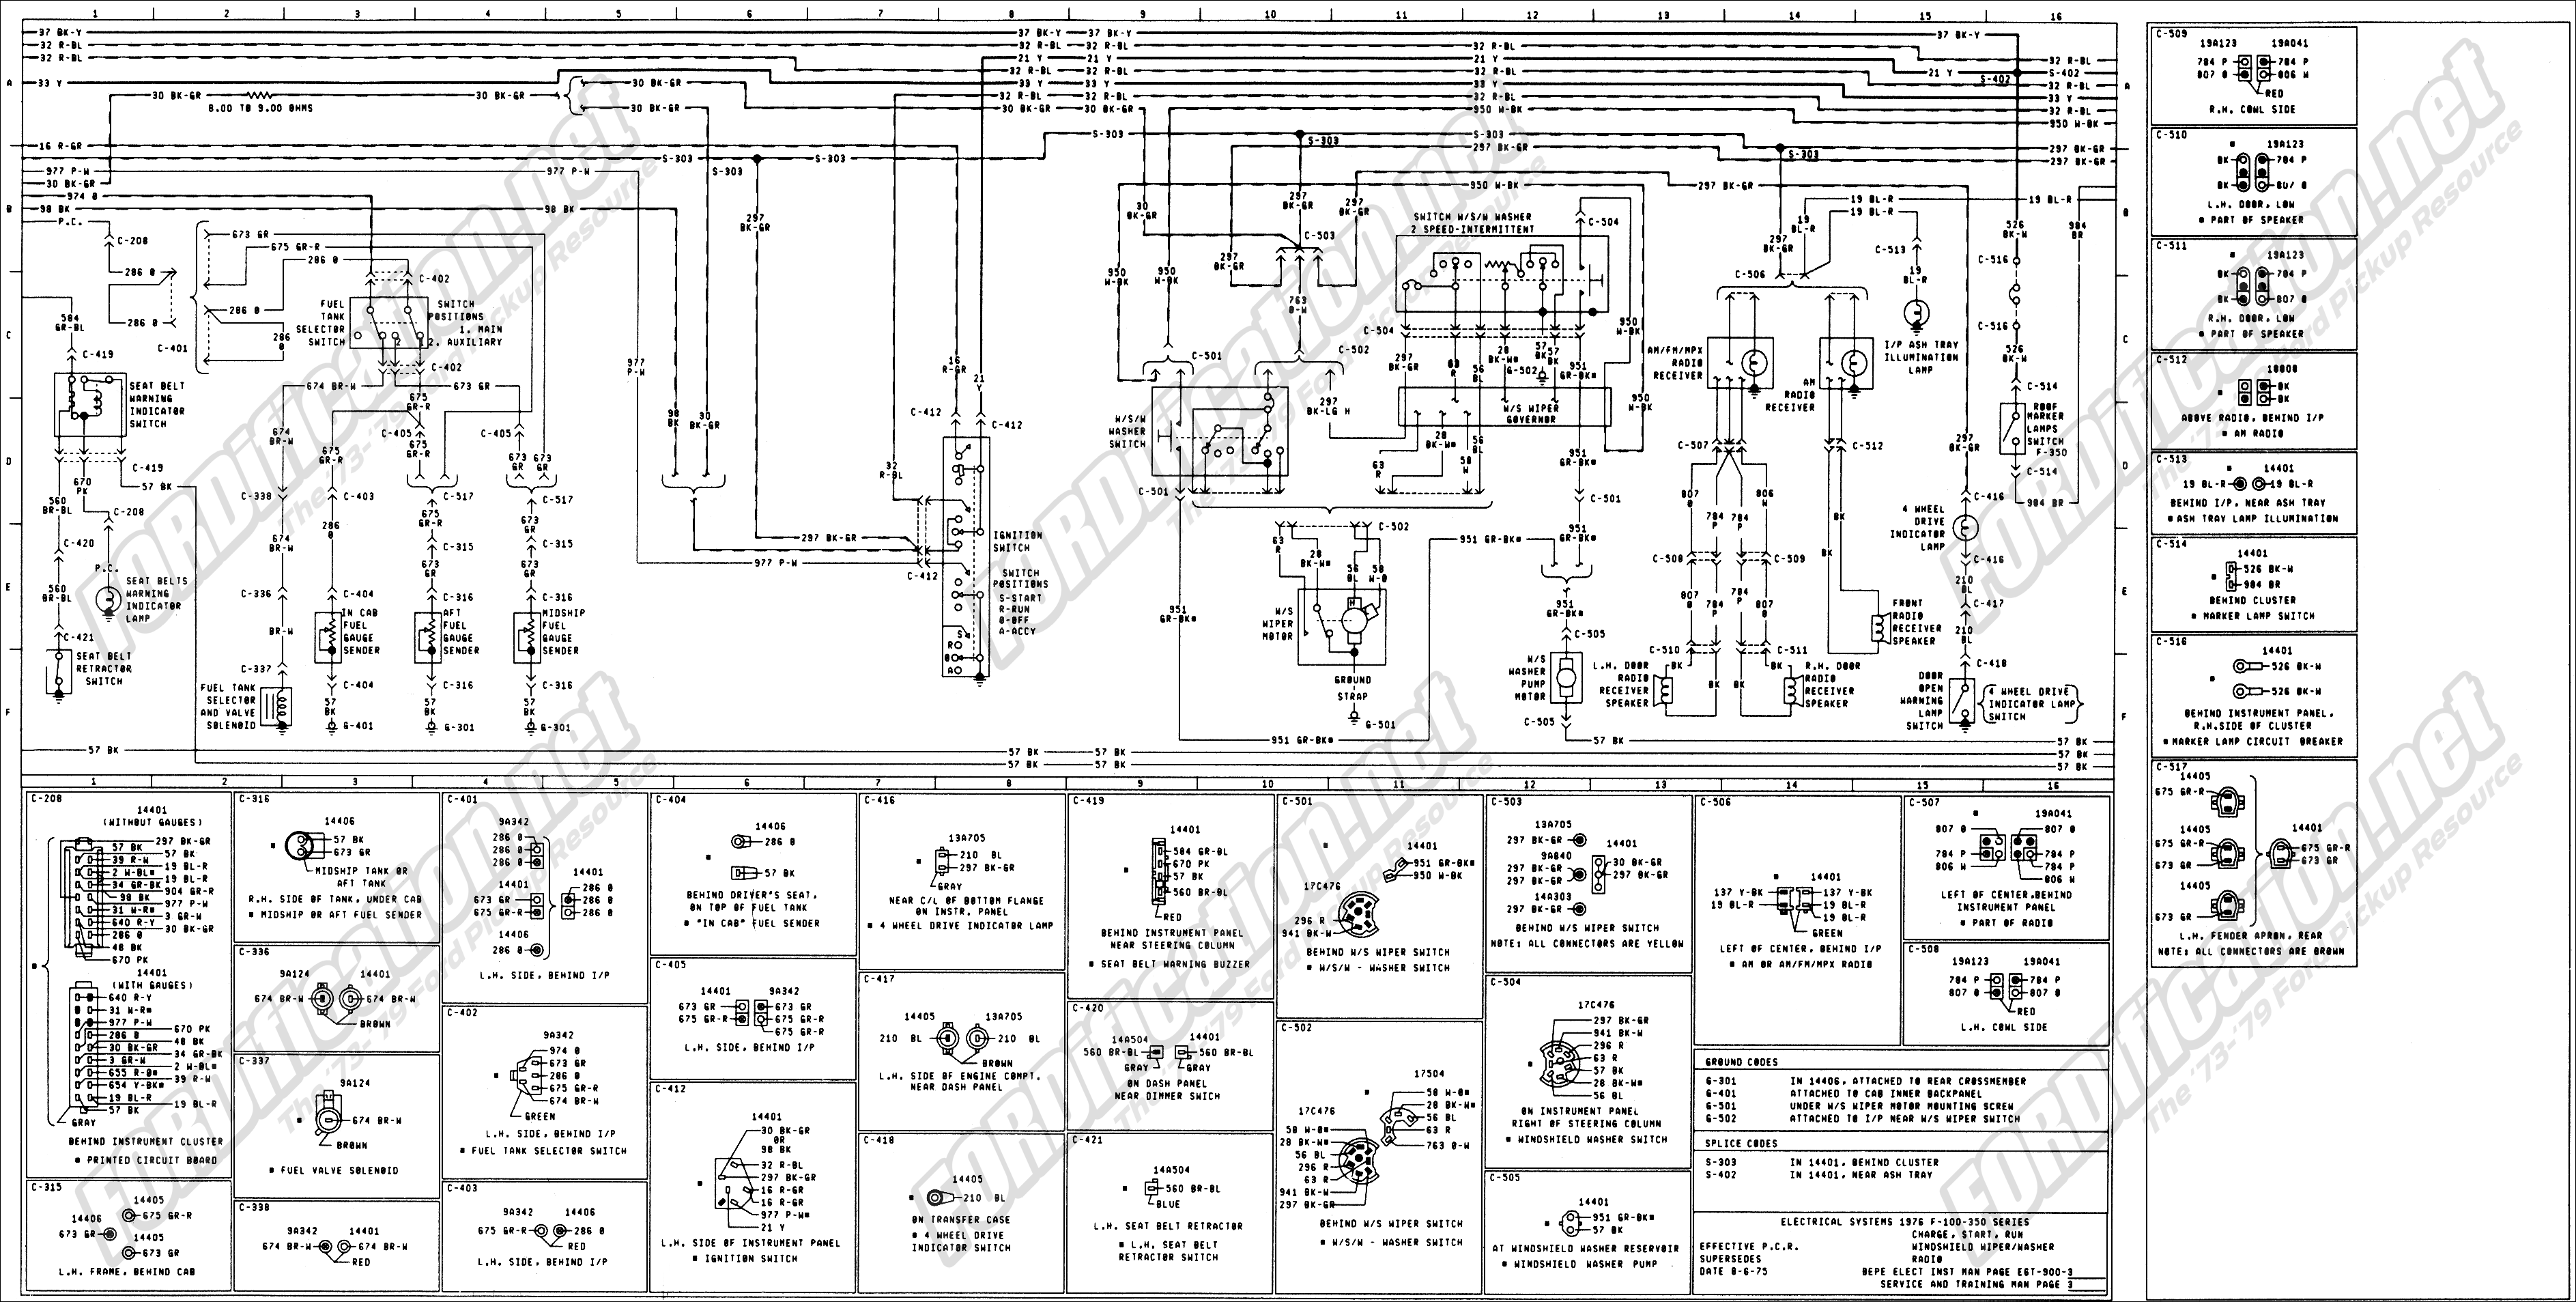 1999 Ford E150 Fuse Box Diagram Trusted Wiring F 250 Trailer 2003 Washer Schematic Example Electrical F150 Under